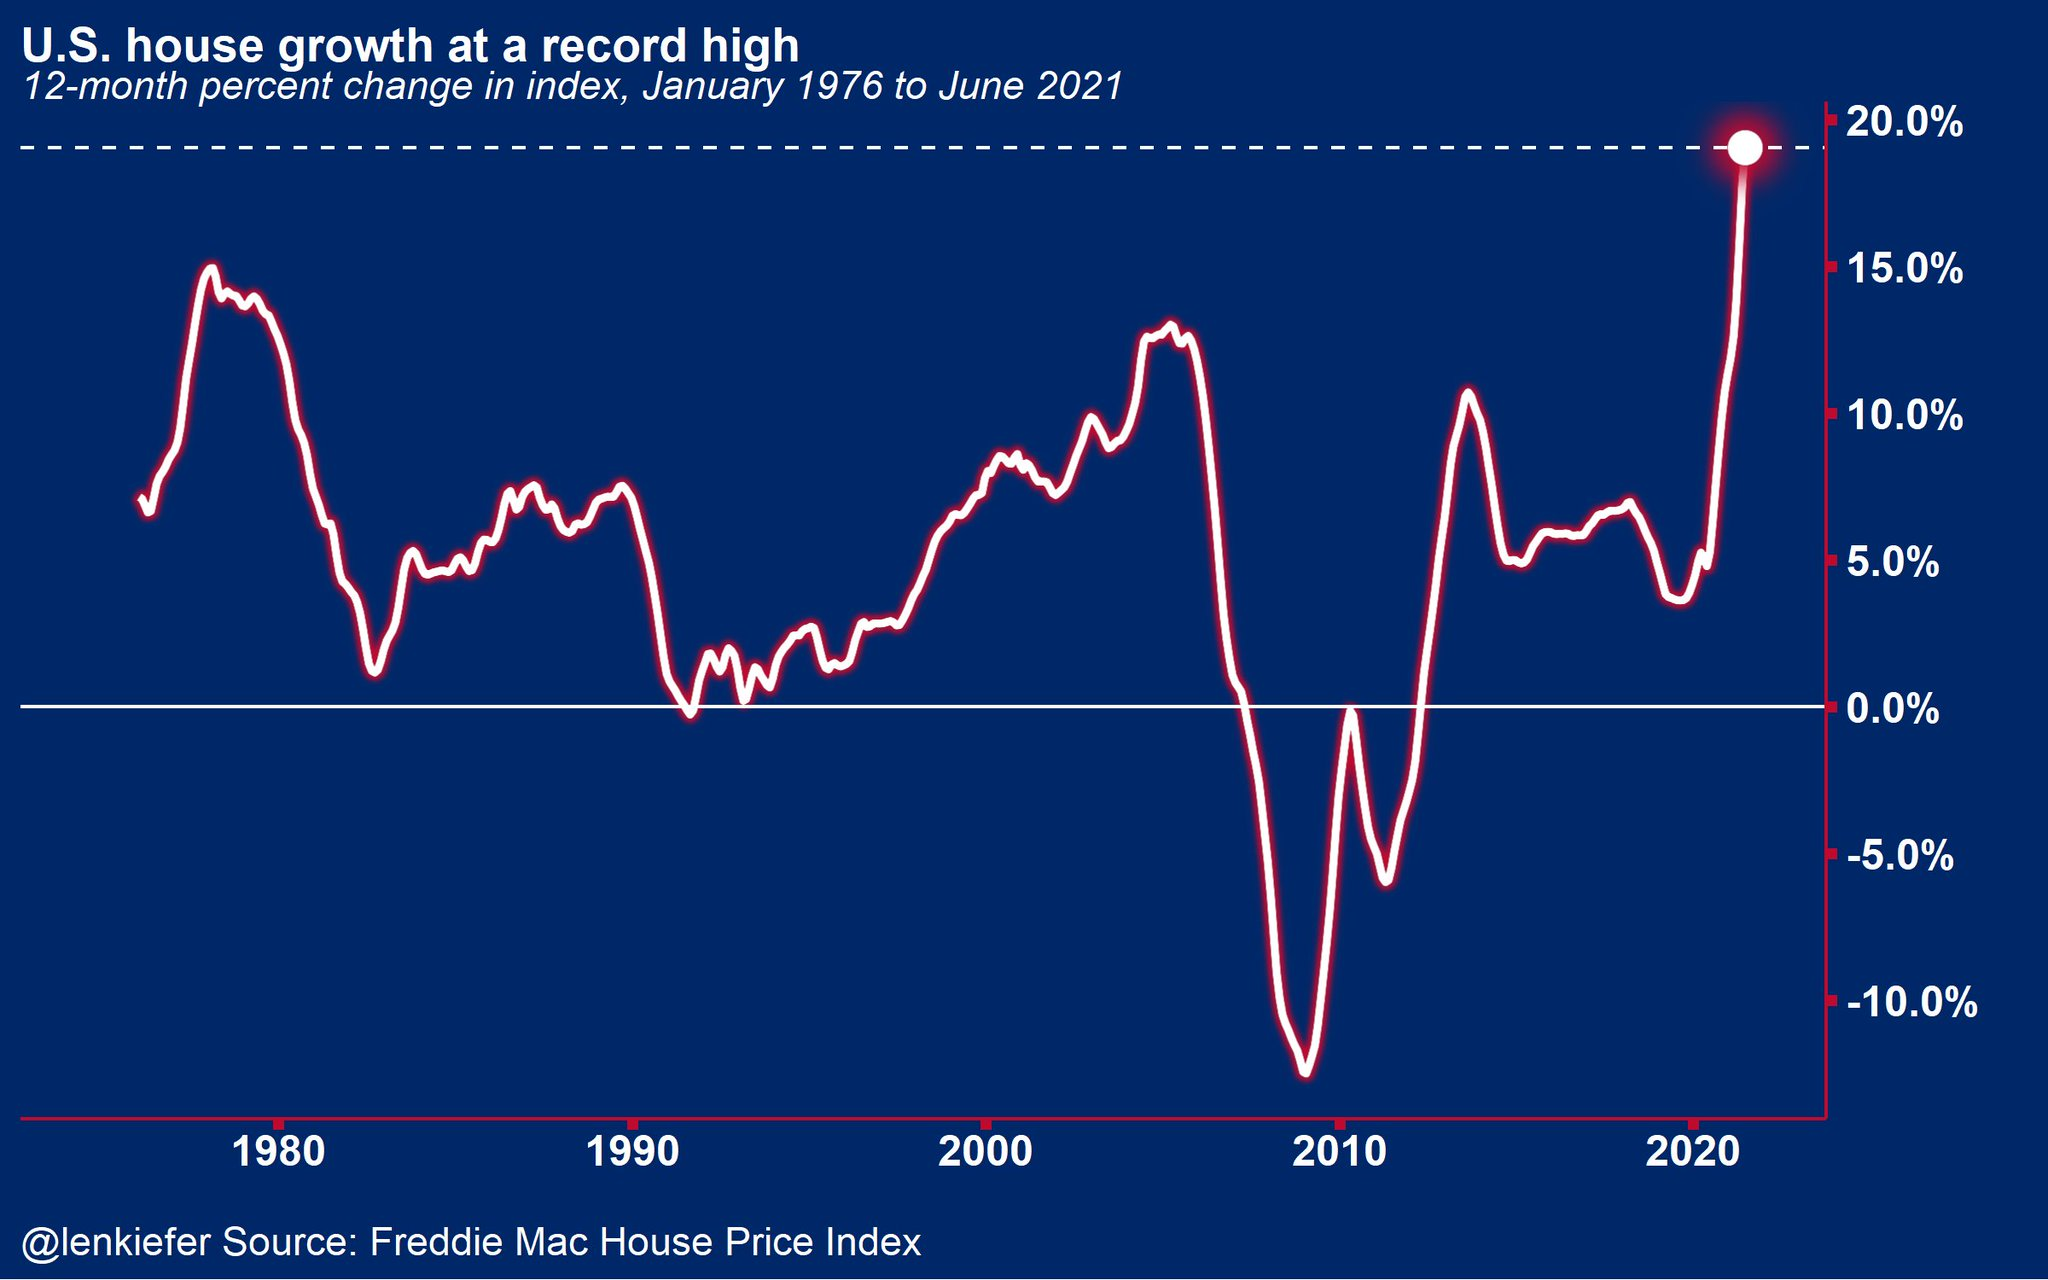 U.S. house price growth at a record high - homeowner's insurance needs to be increased